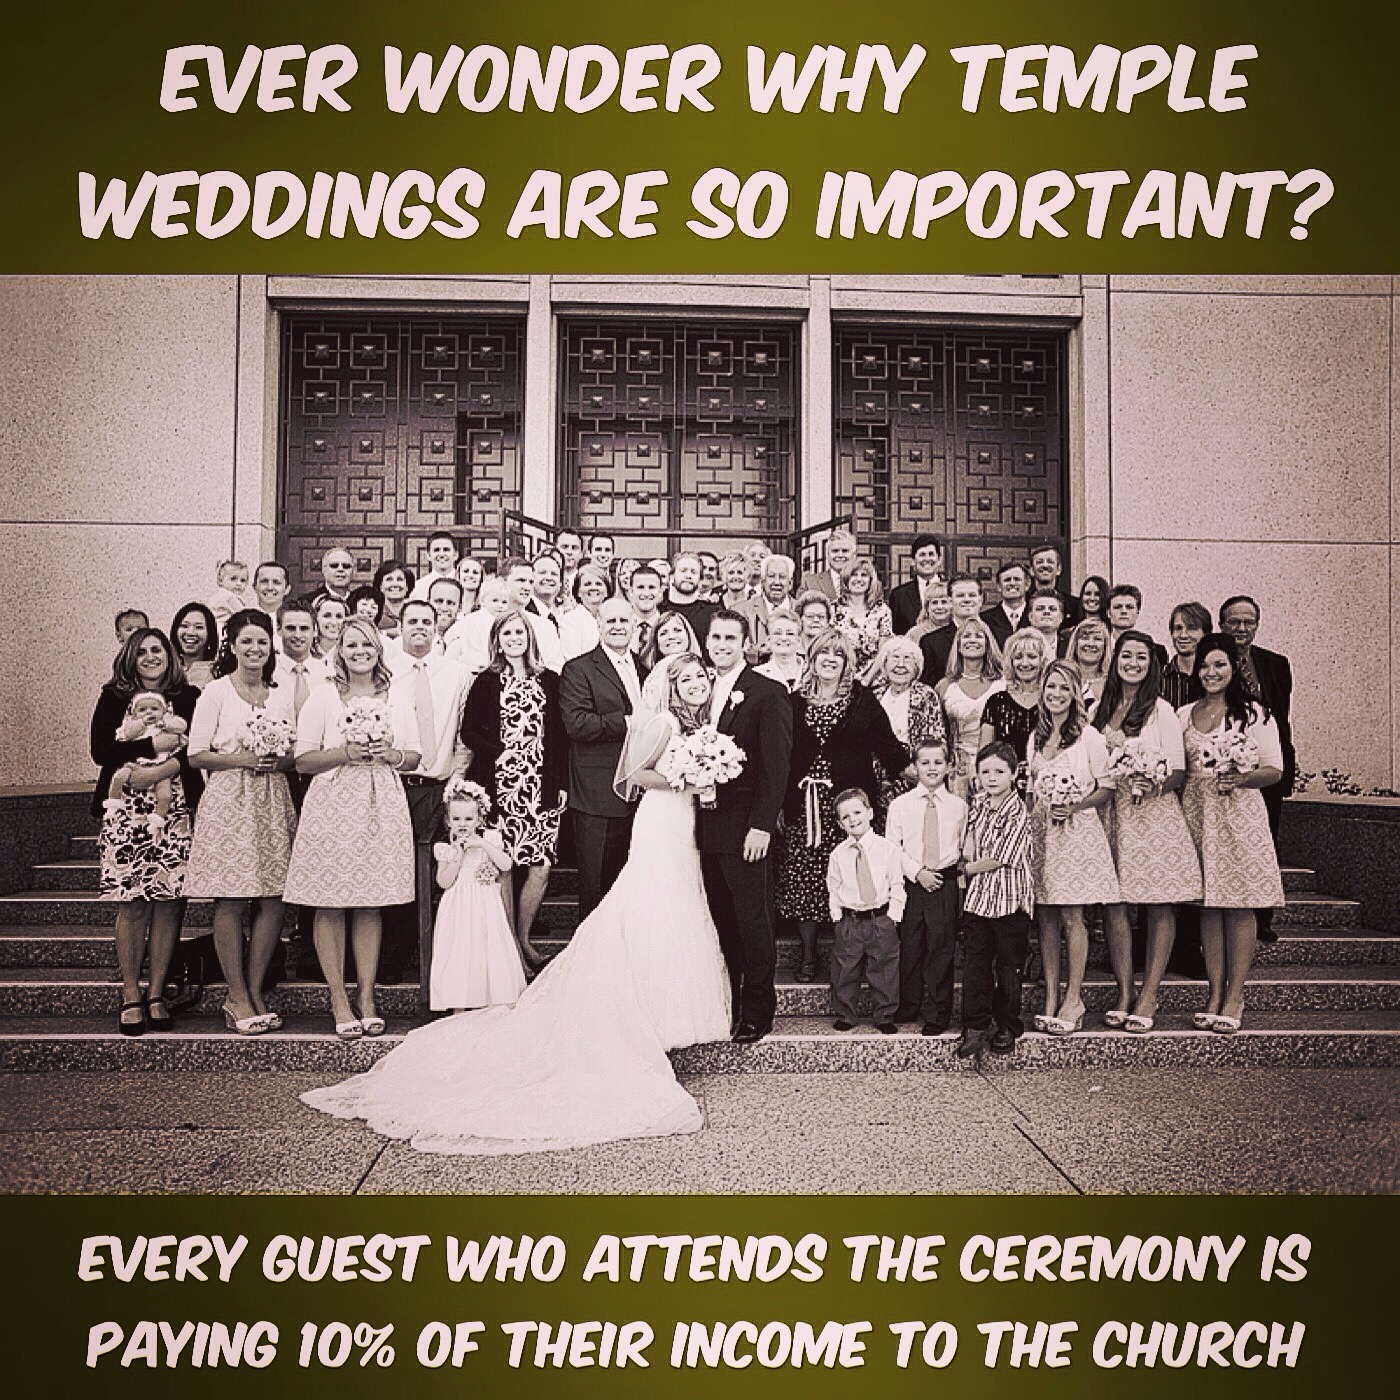 Temple marriage and tithing